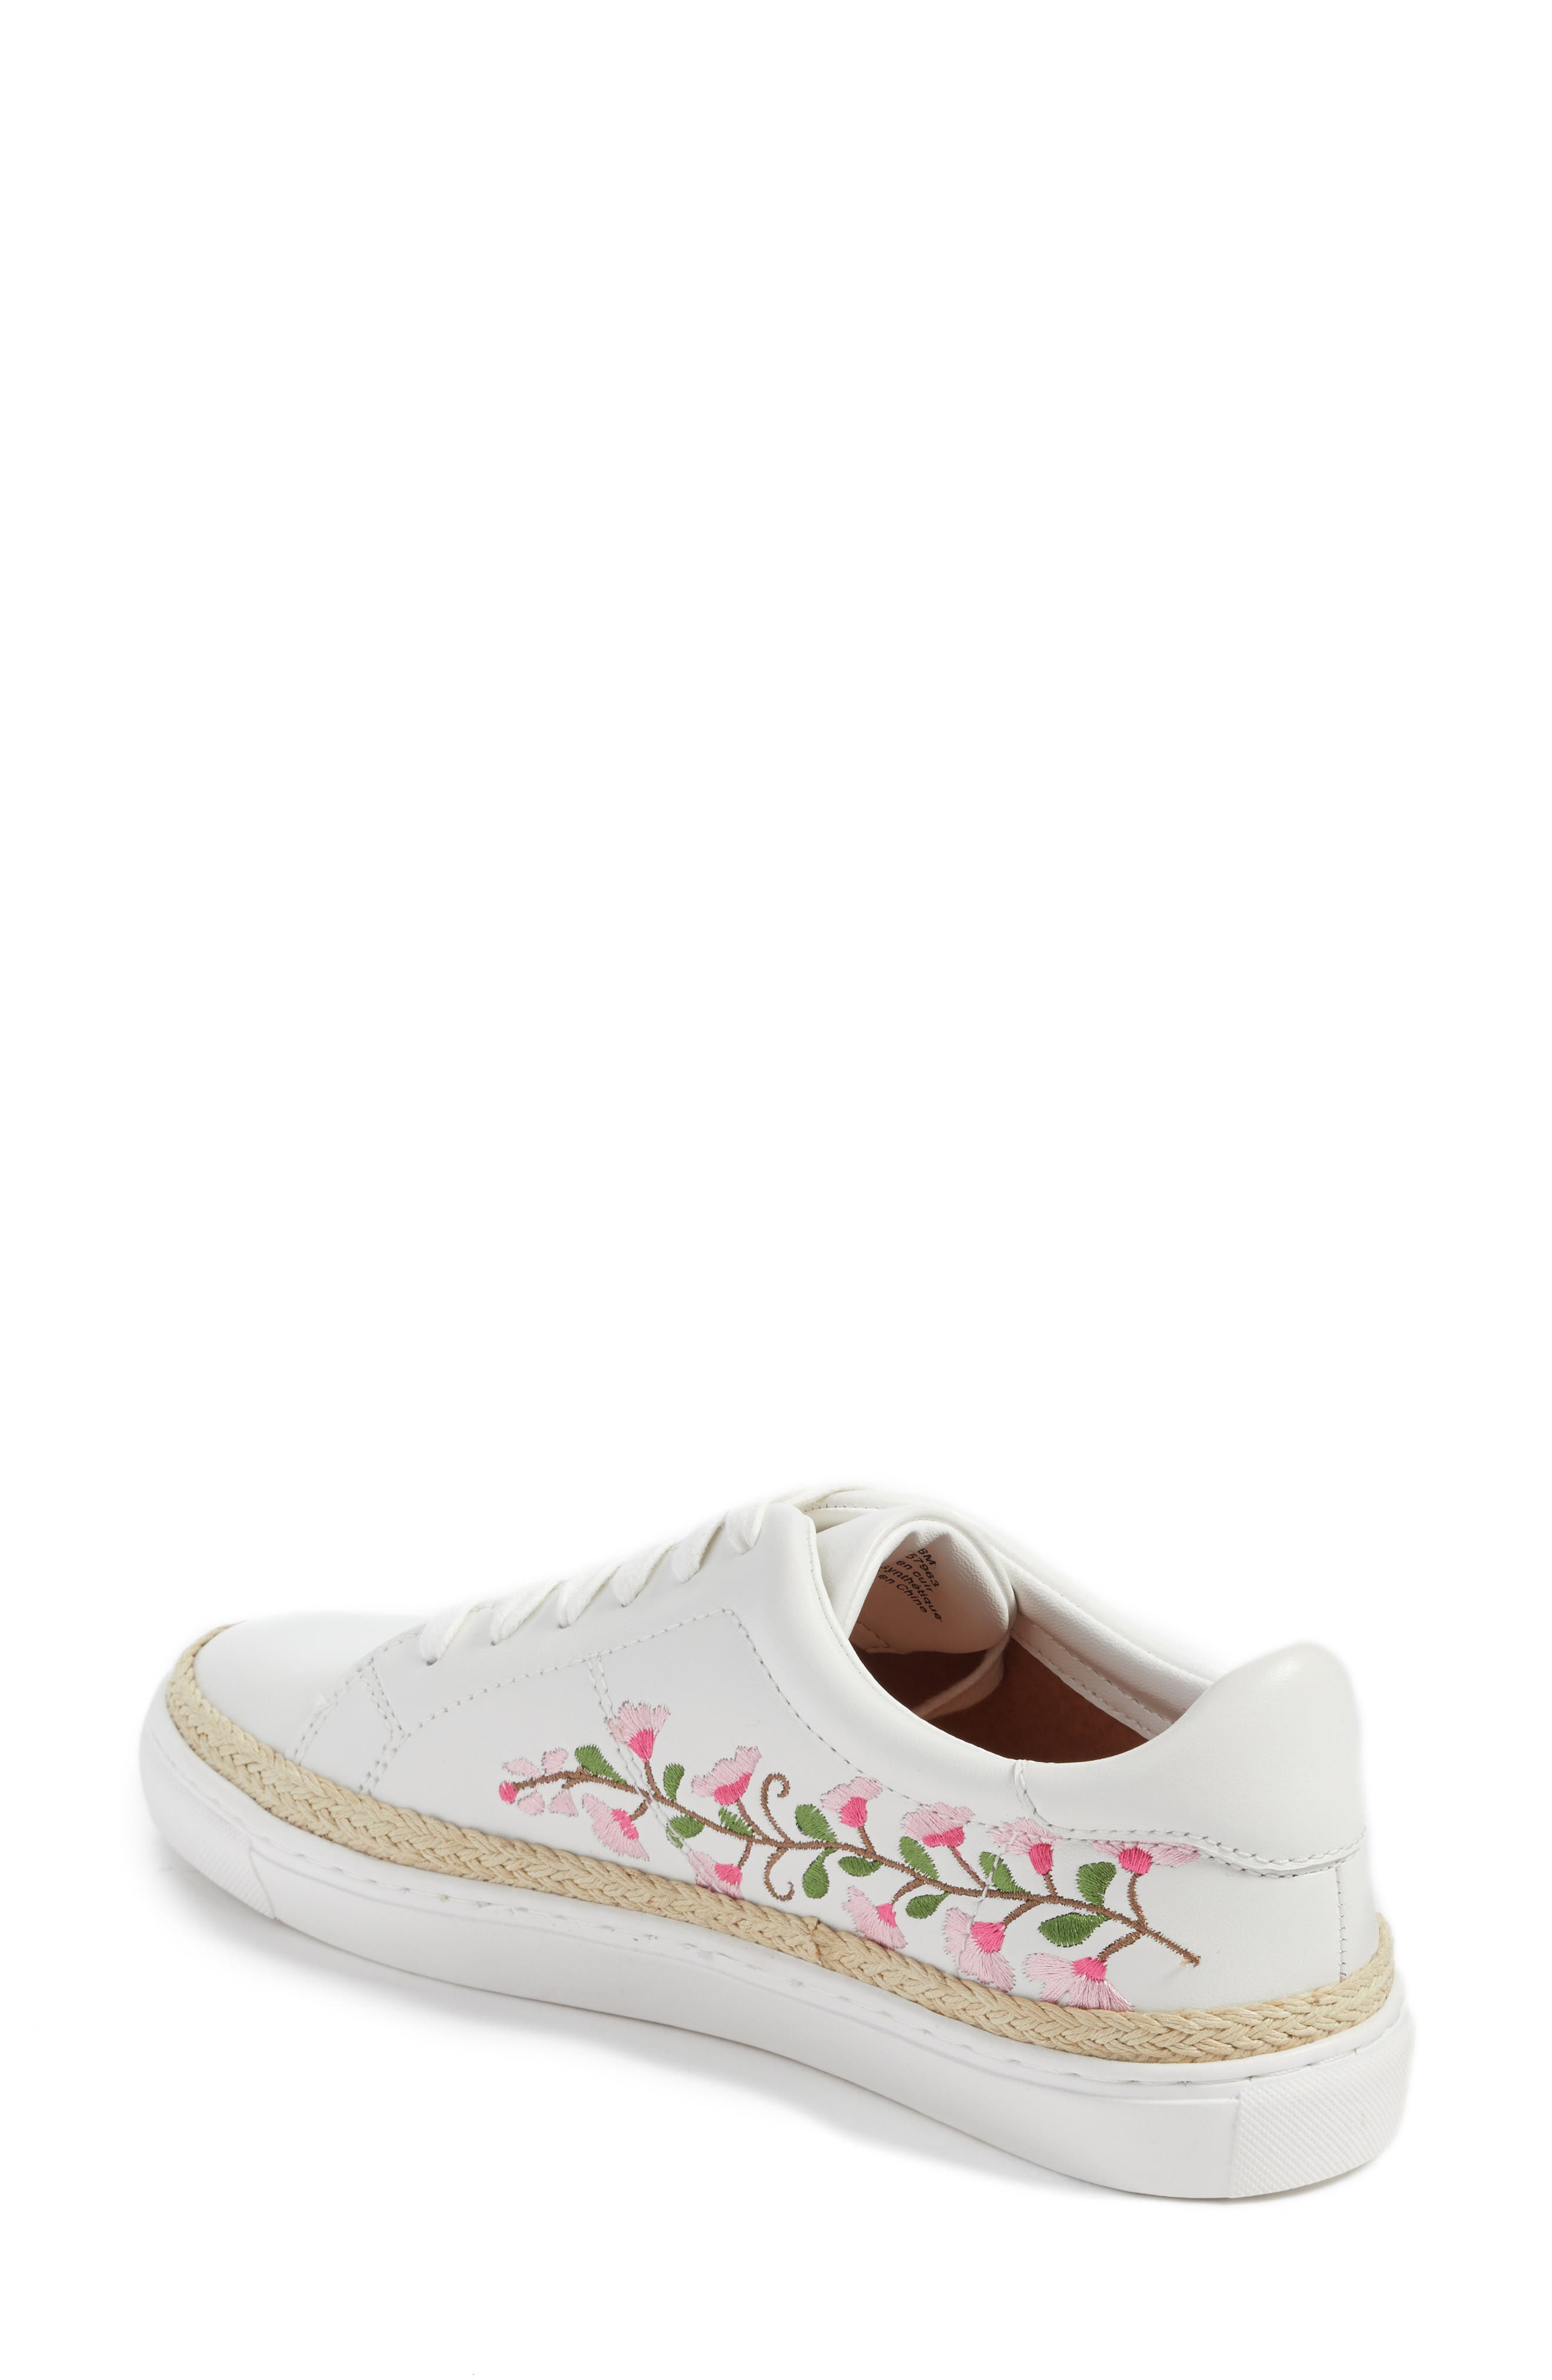 Perry Lea Embroidered Sneaker,                             Alternate thumbnail 2, color,                             White Leather